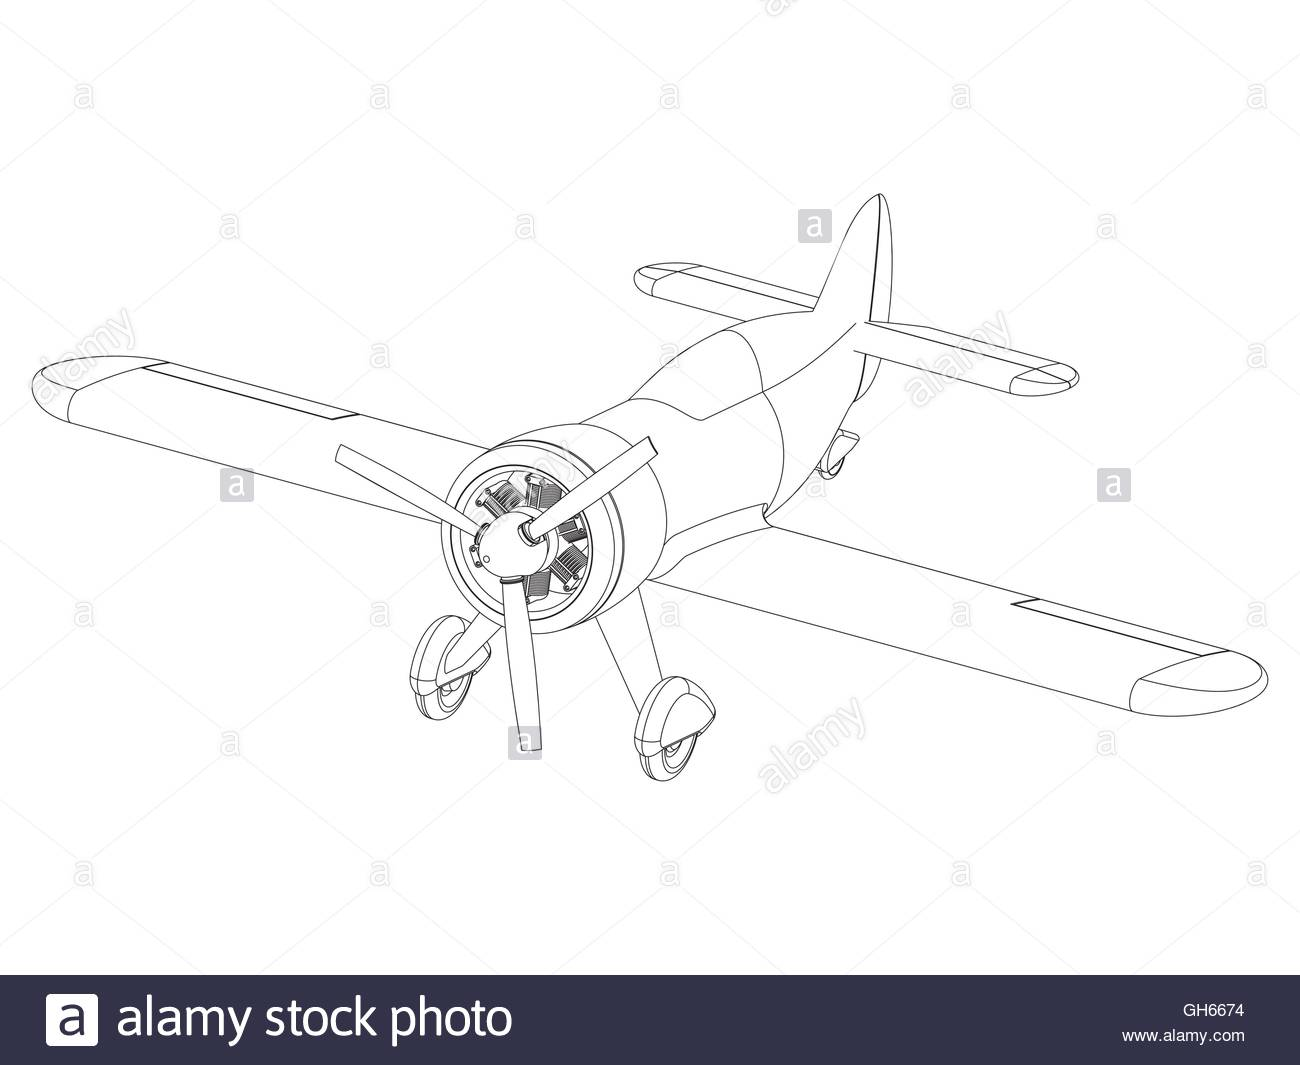 1300x1065 Vector Isolated Propeller Plane Drawing Stock Vector Art